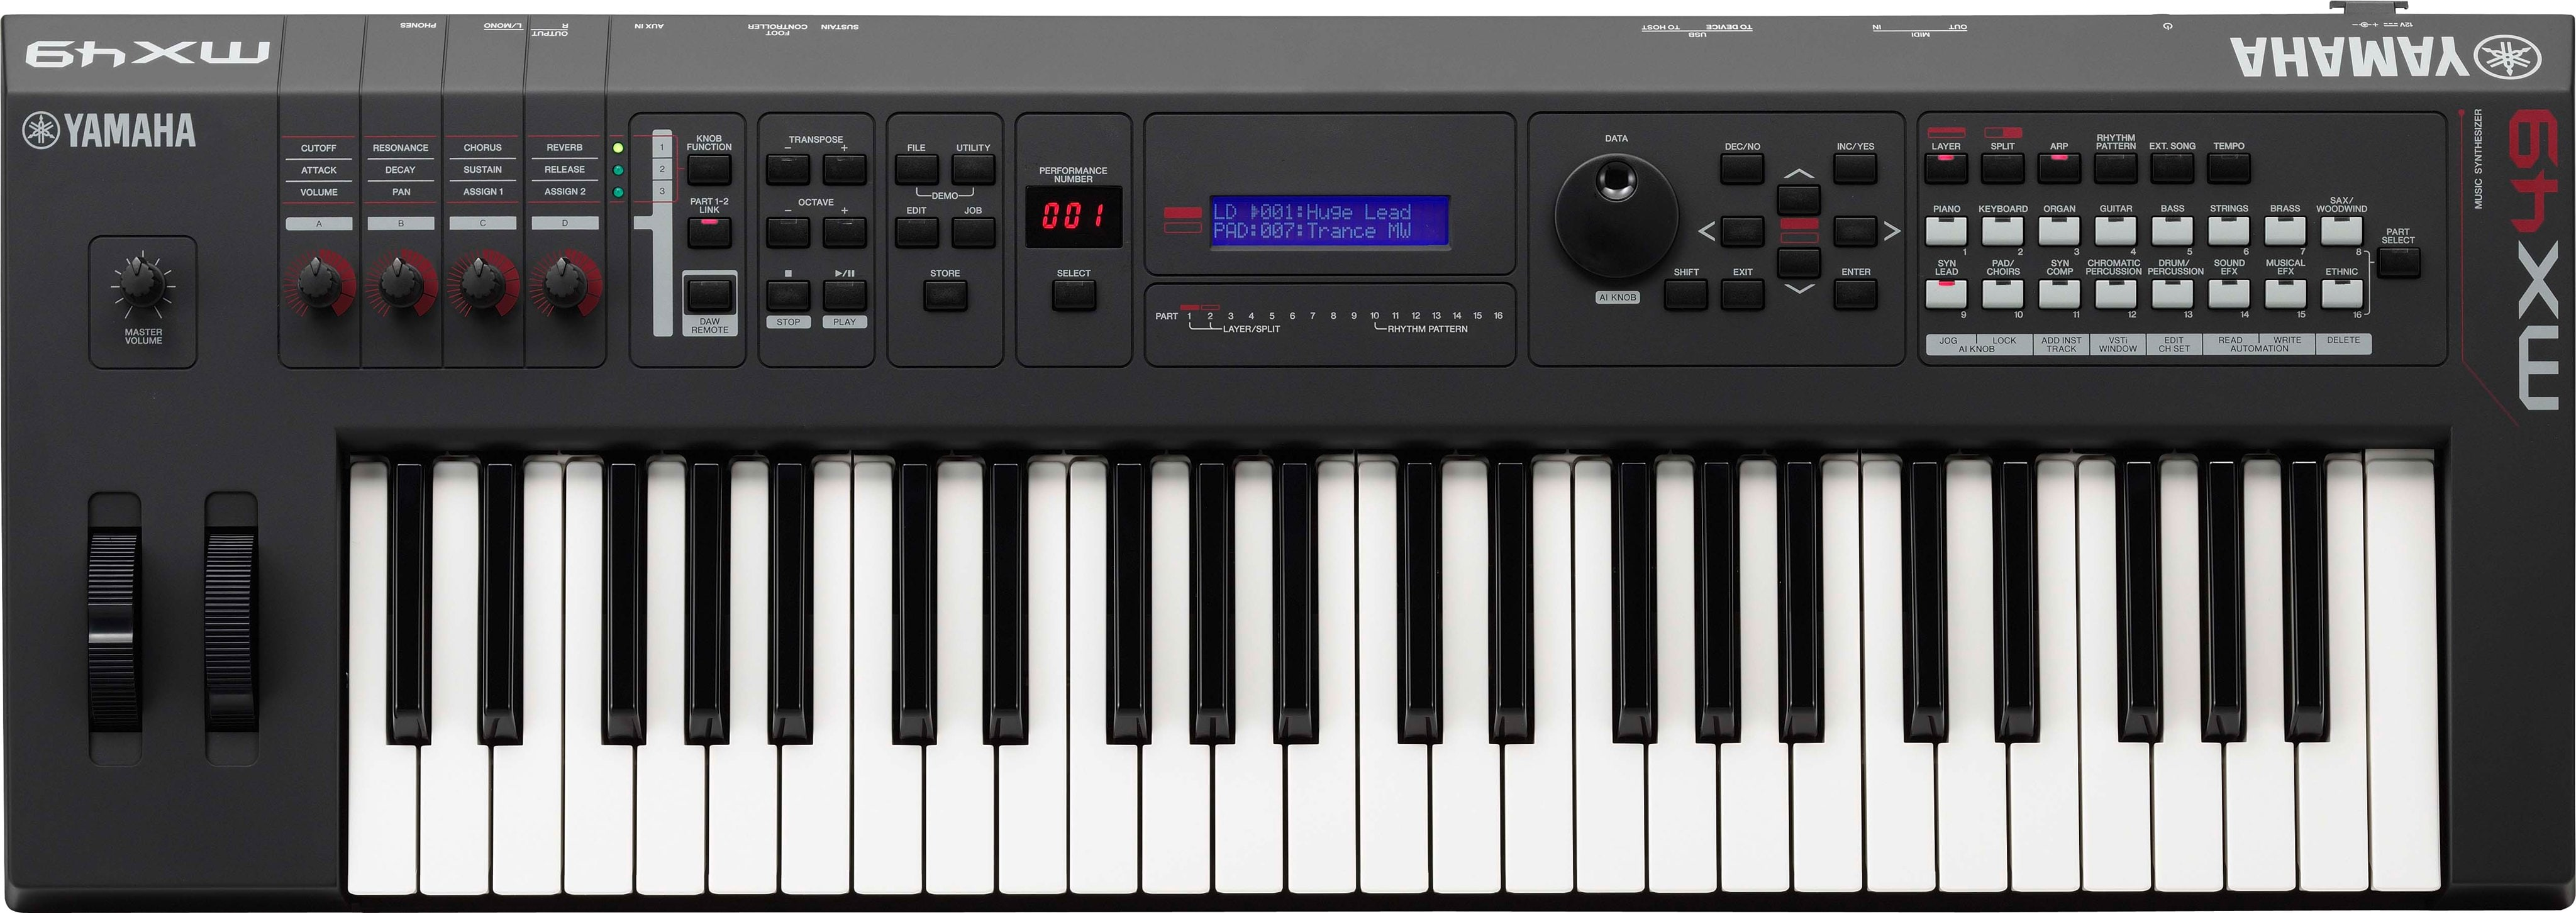 Mx series overview synthesizers synthesizers music for Yamaha a3000 keyboard